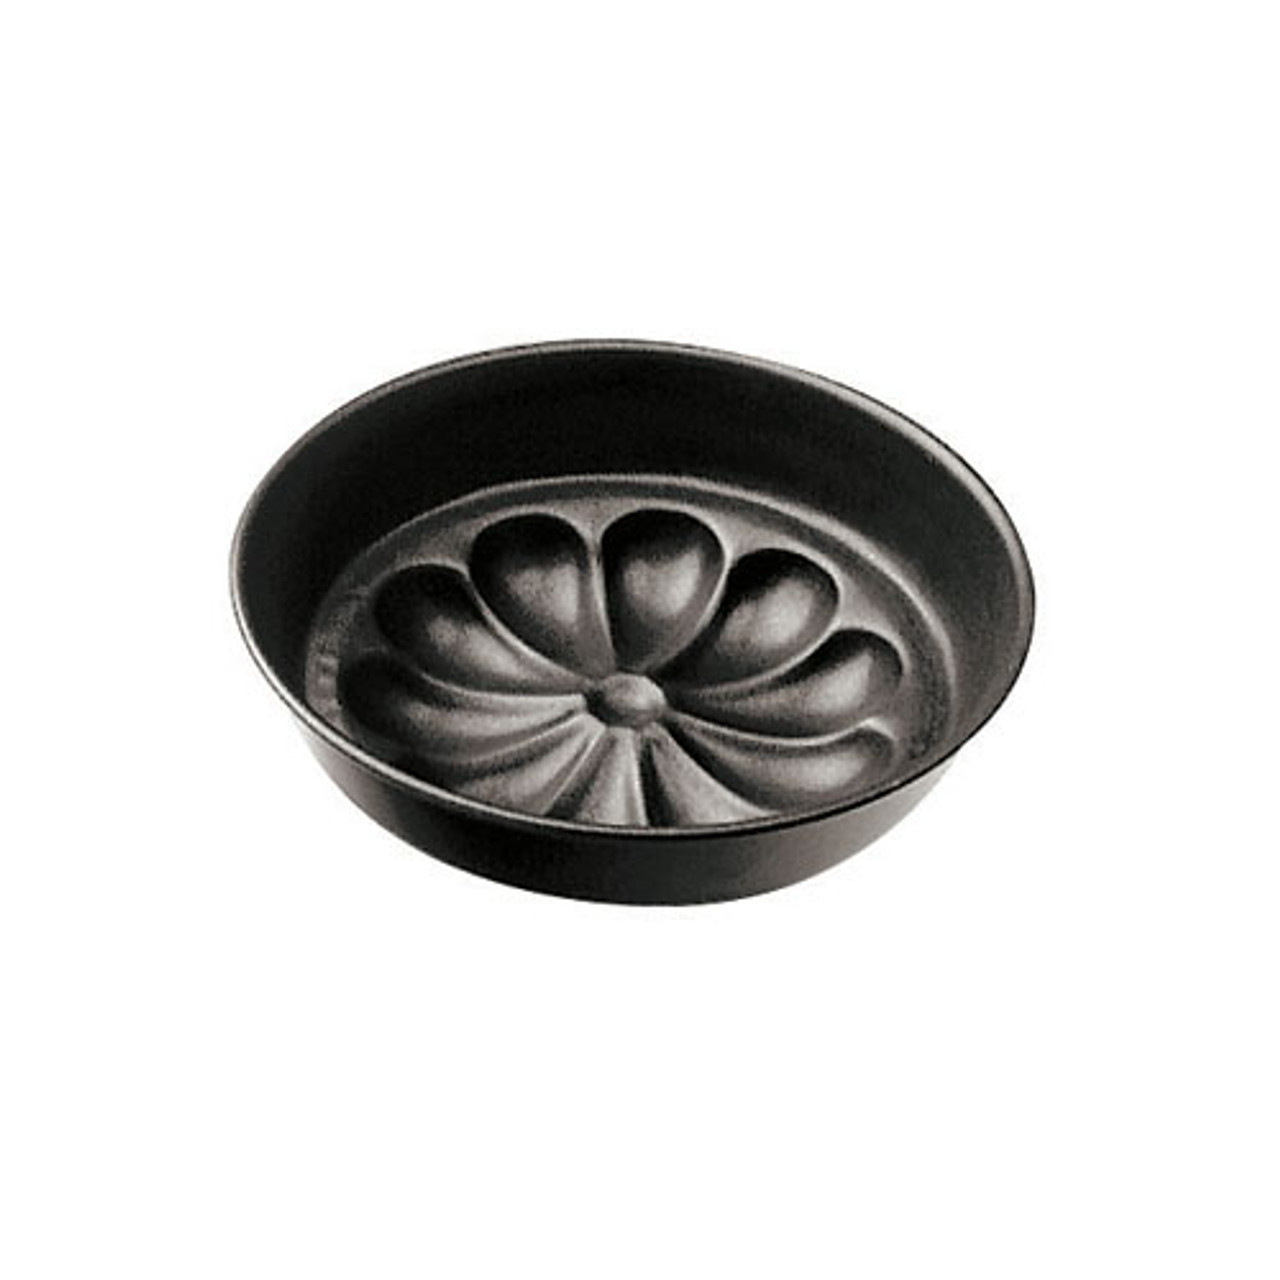 Non-Stick Flower Mold, DIA 7 7/8' X H 2 3/8""